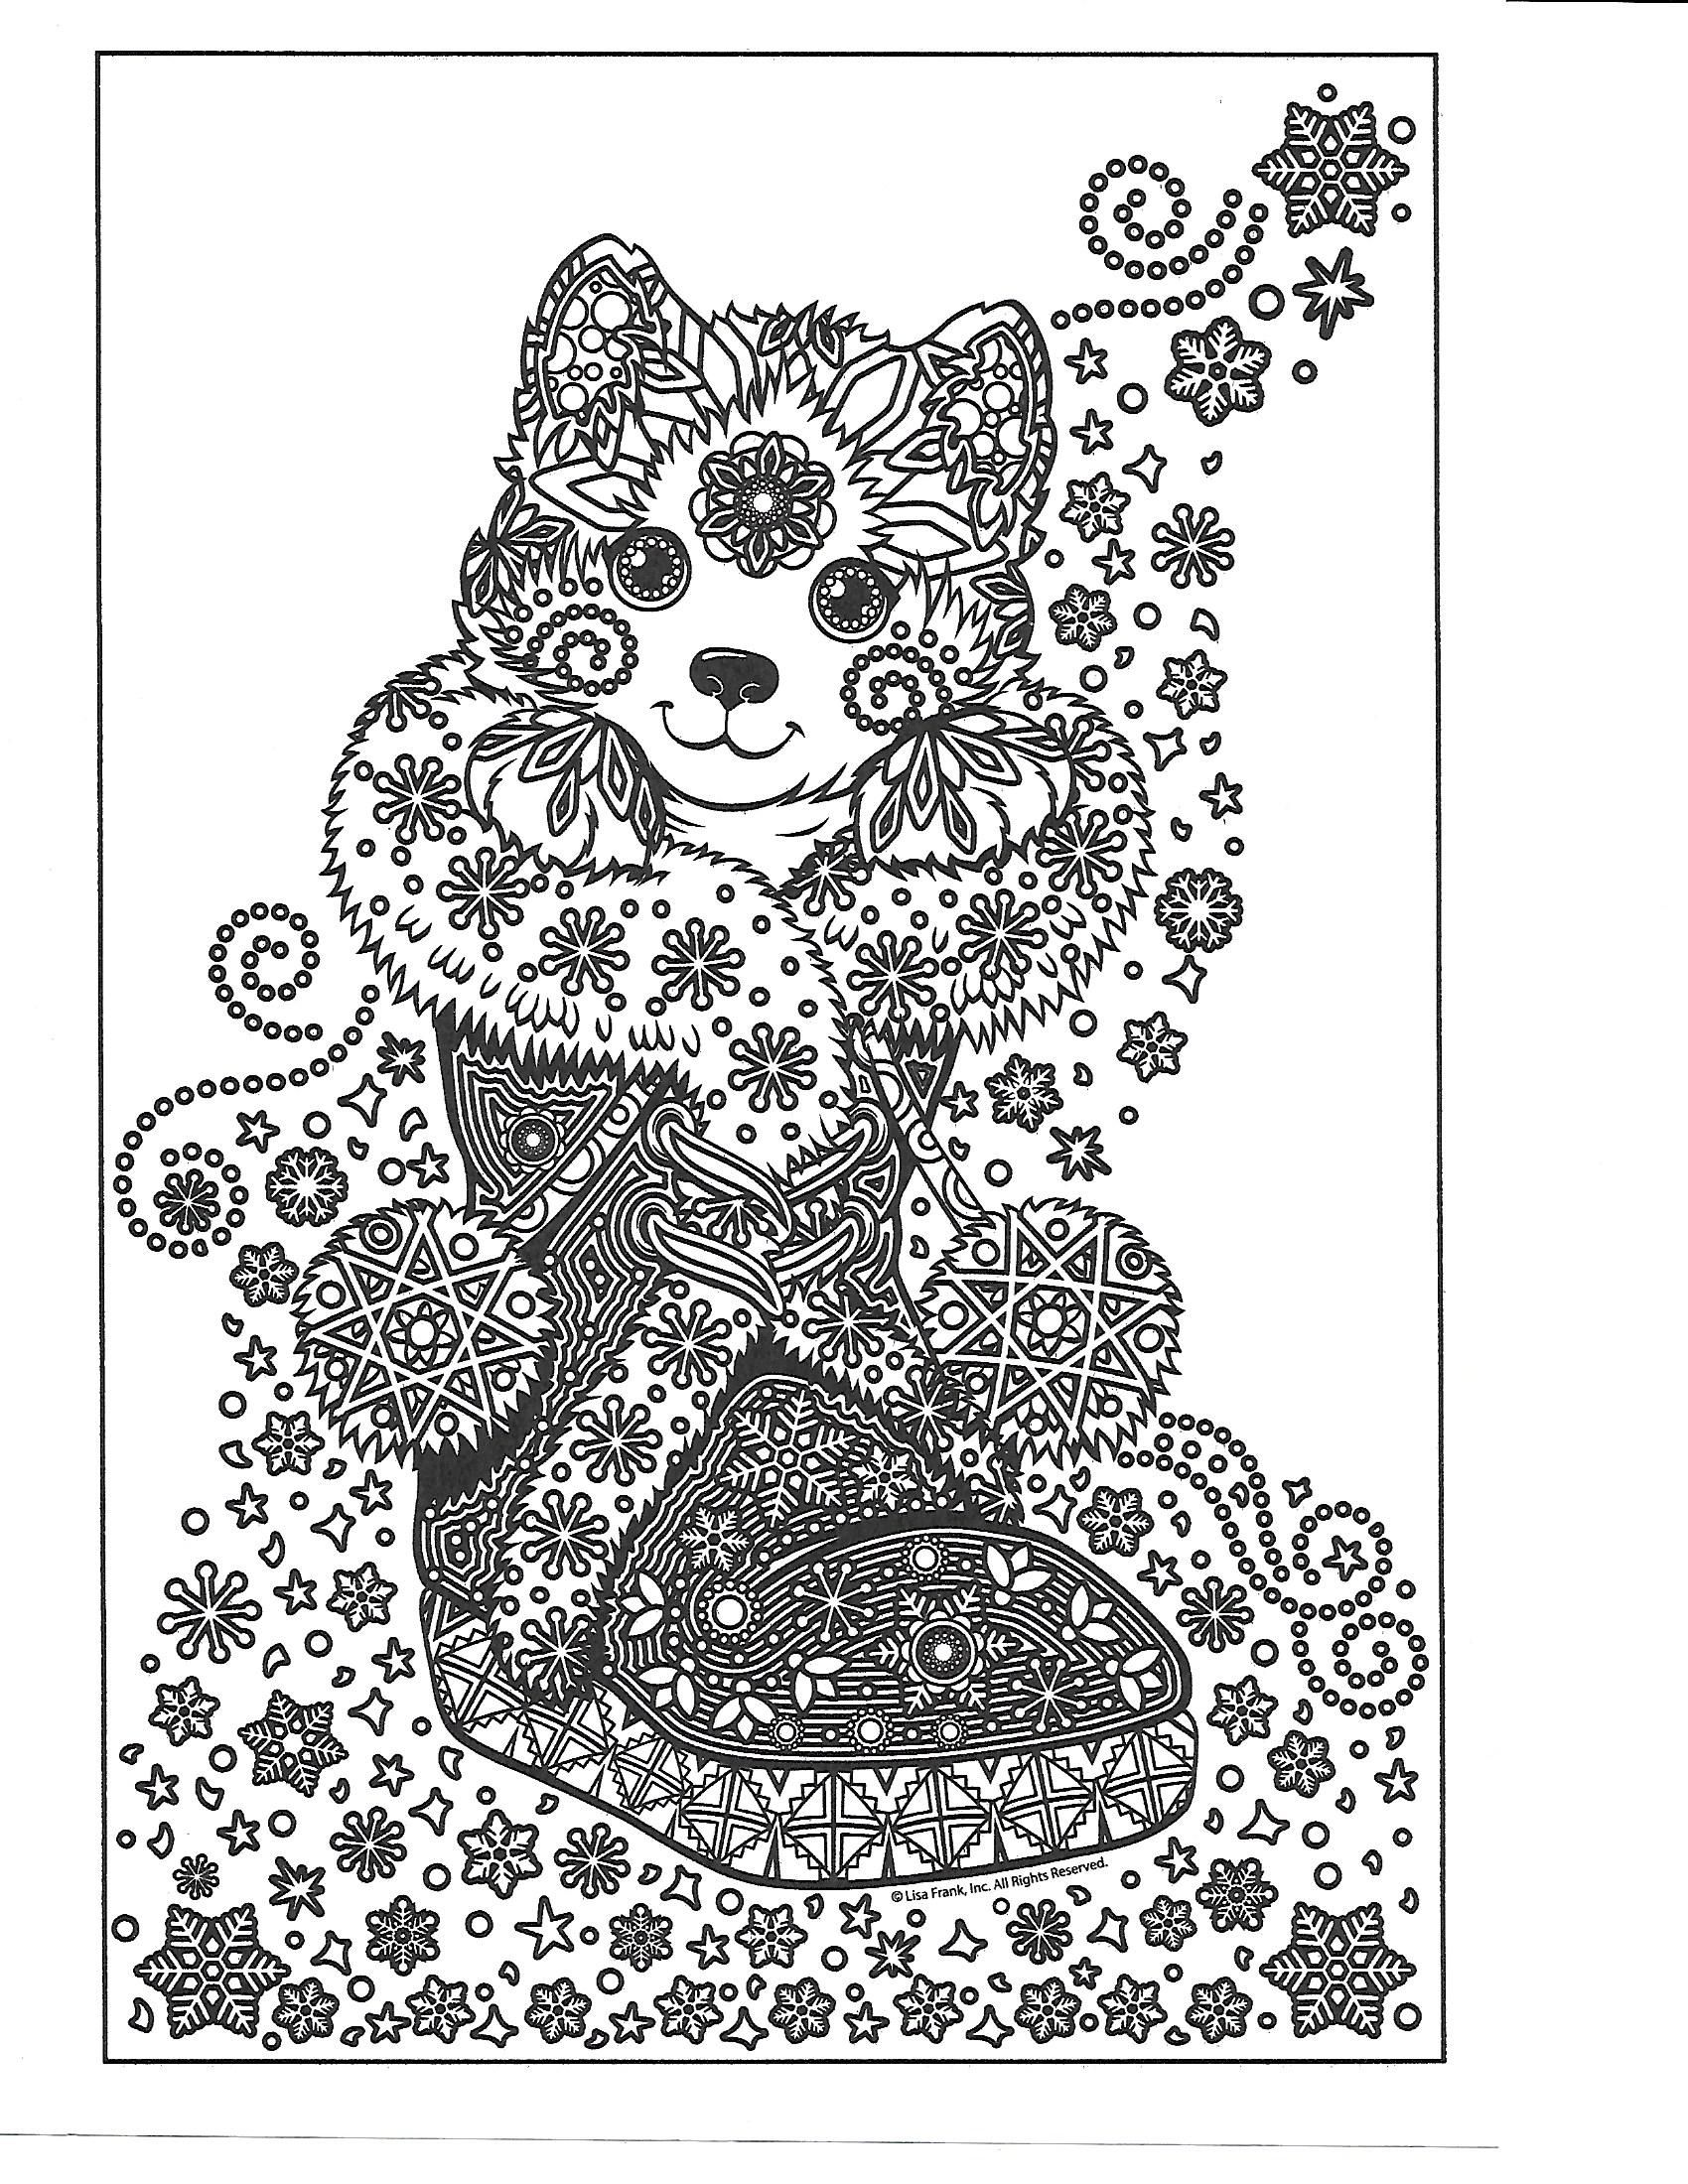 Pin By Beth Conroy On Color Cats Colouring Pages Christmas Colors Coloring Pages [ 2200 x 1700 Pixel ]